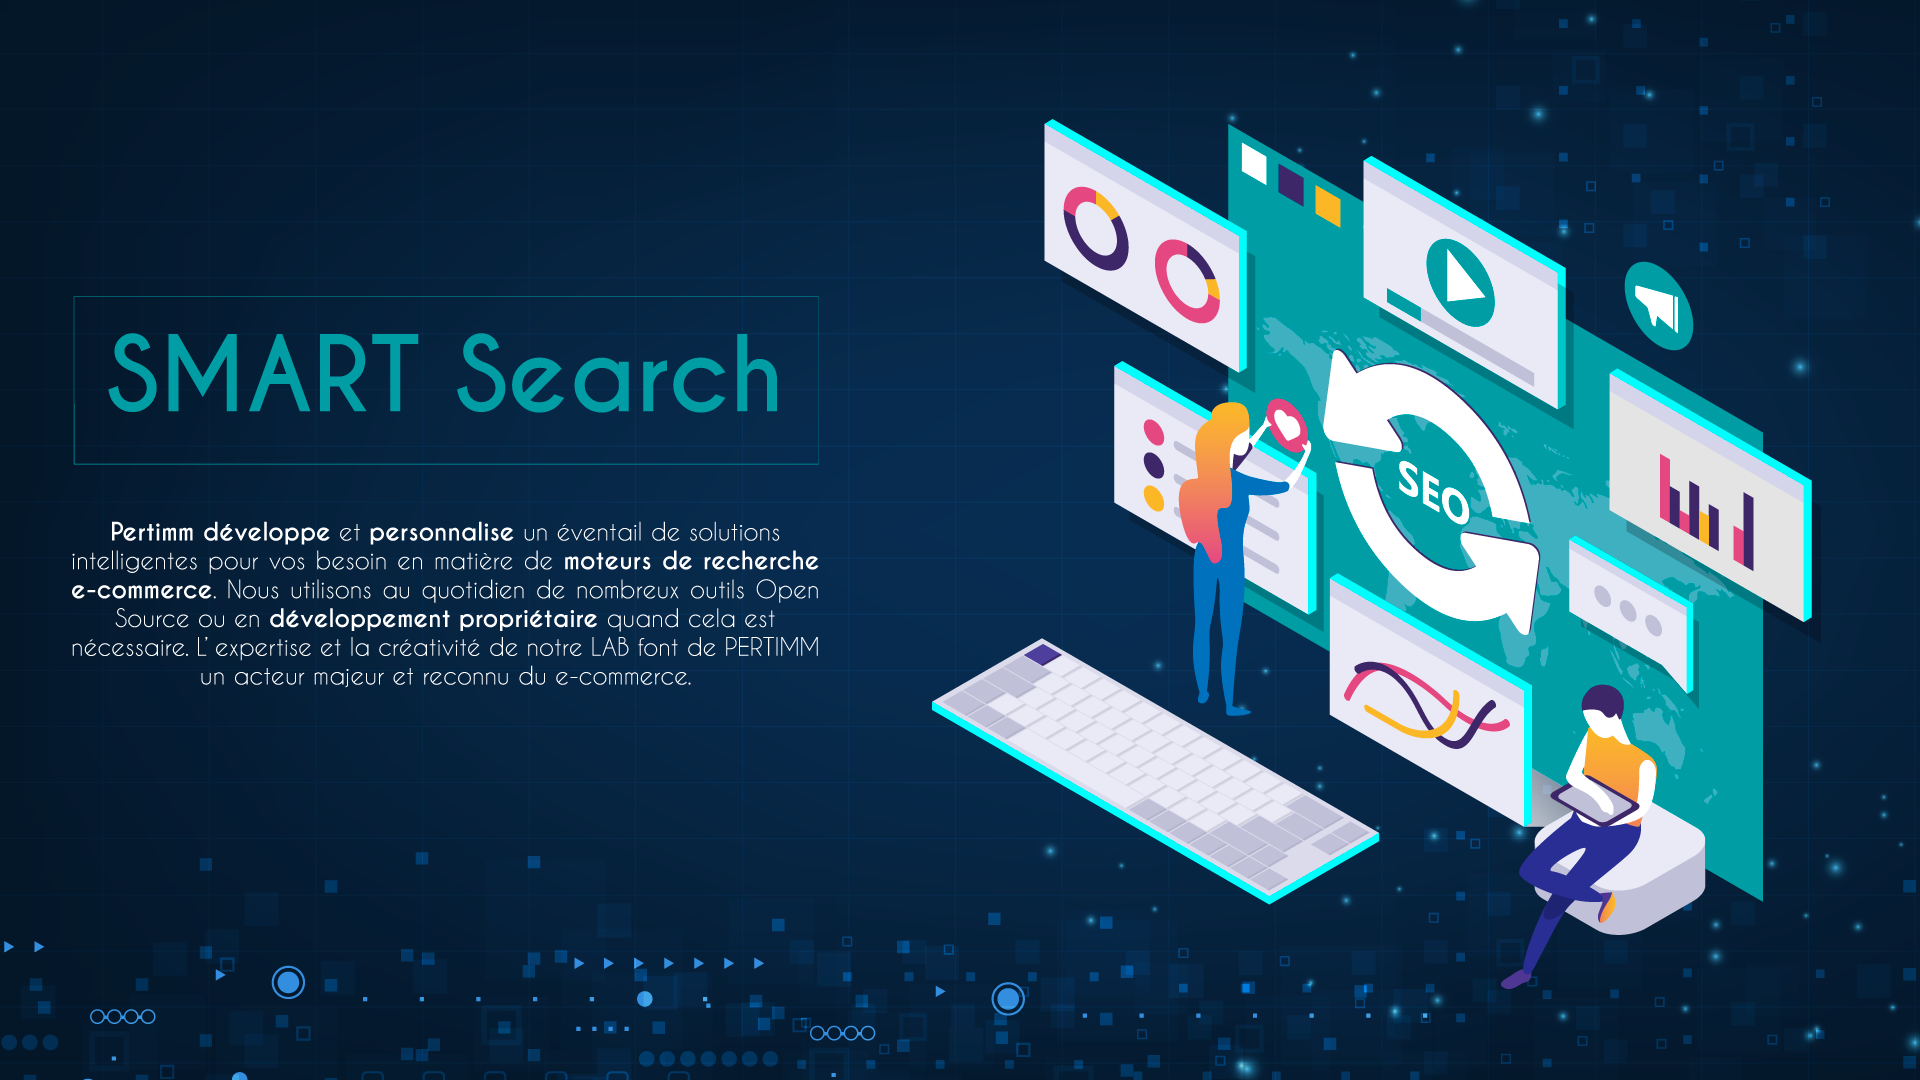 Technologies---Smart-search